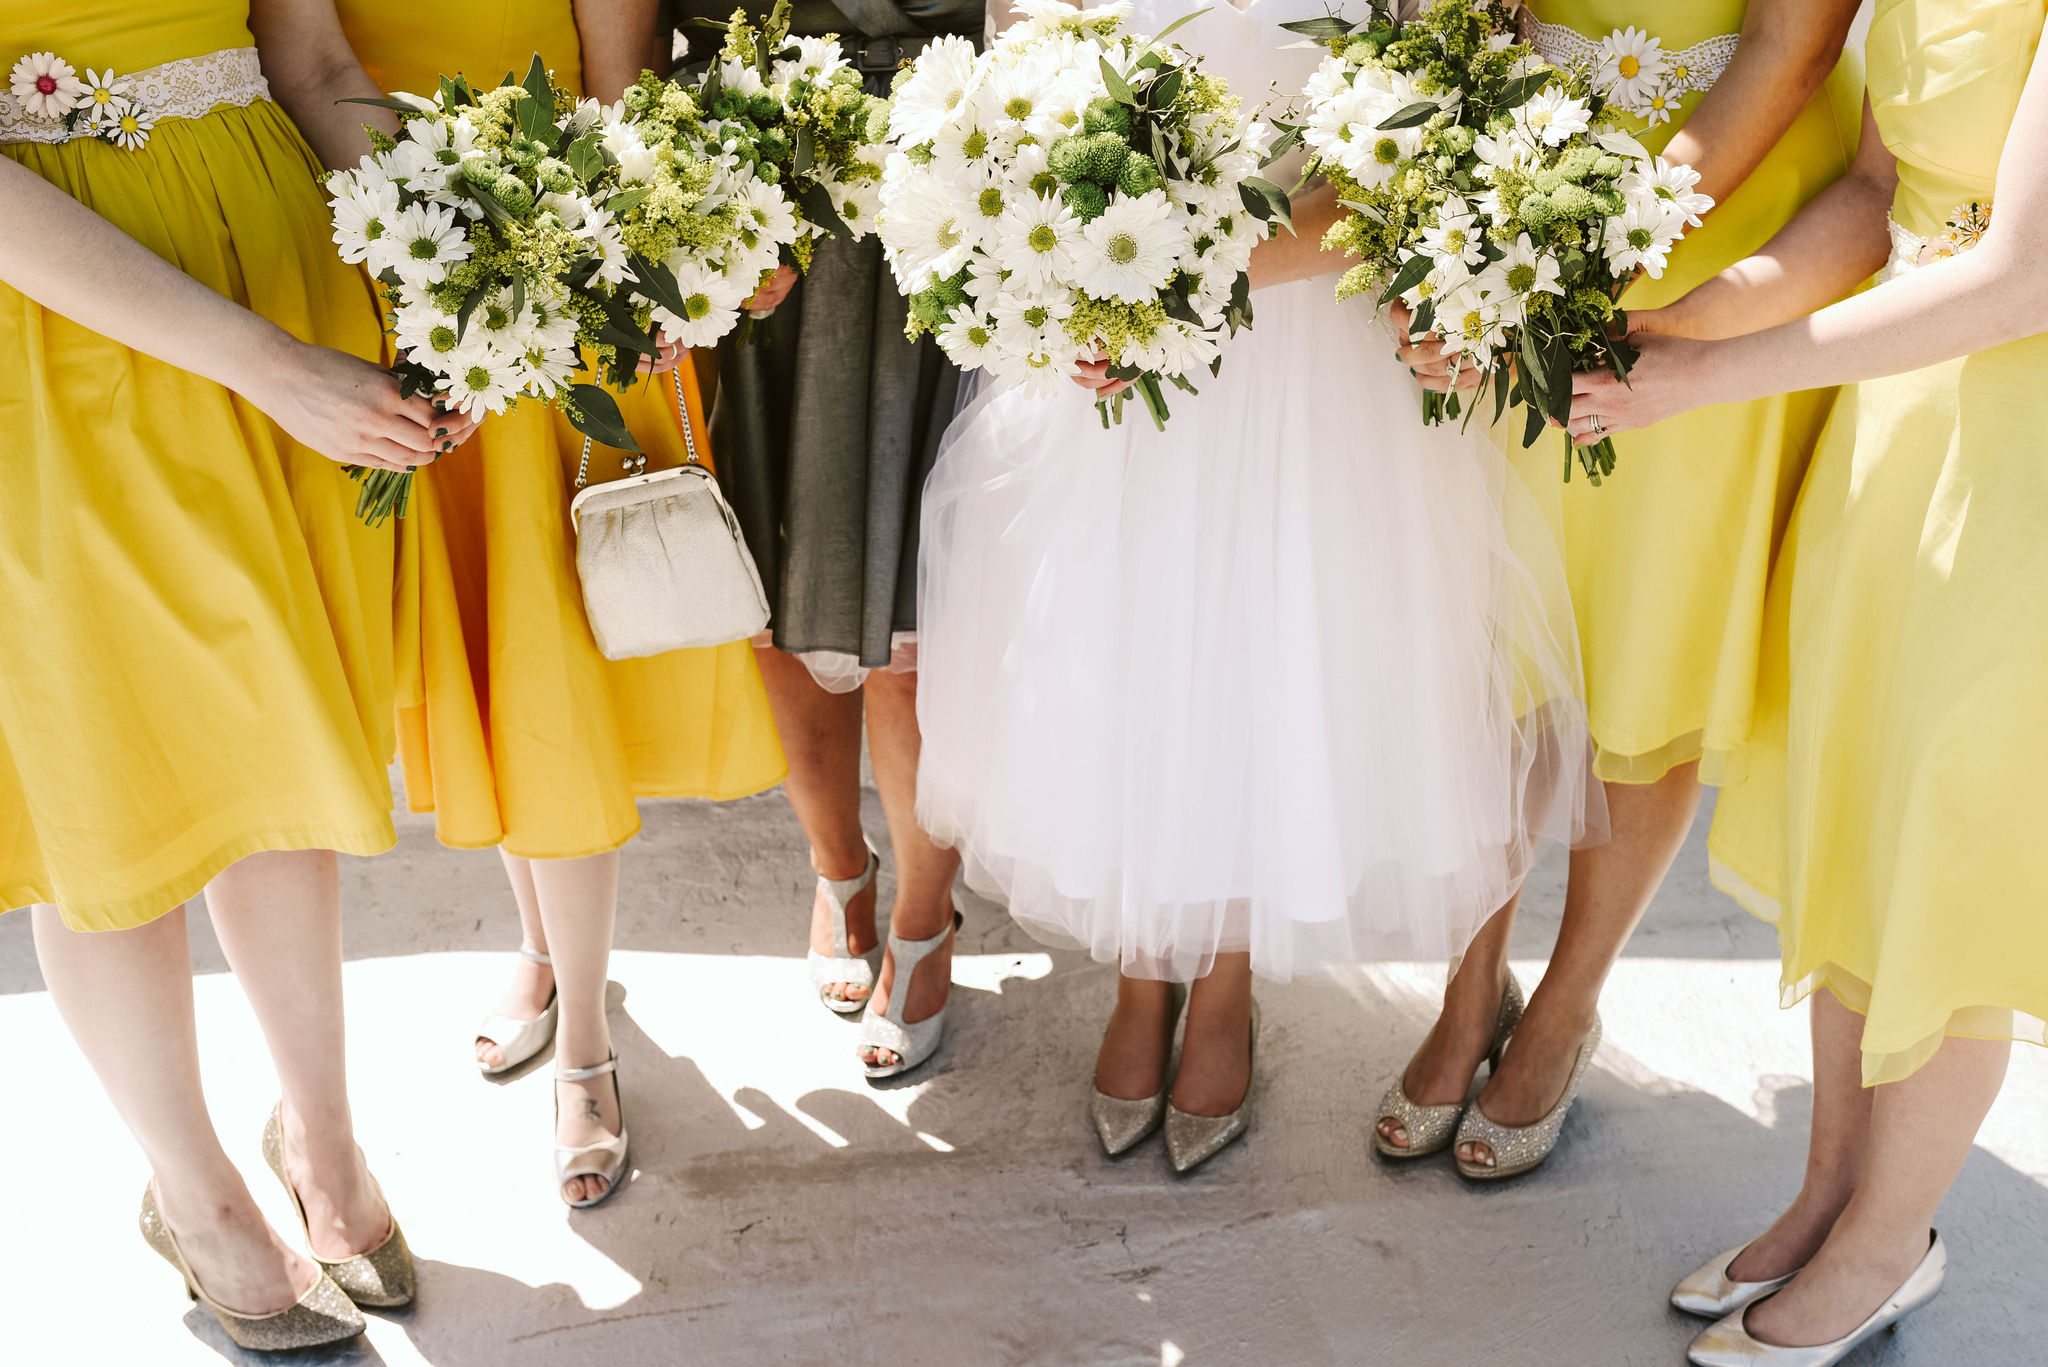 Baltimore, Church Wedding, Maryland Wedding Photographer, Vintage, Classic, Bride with Bridesmaids, Portrait Photo, White Daisies, Glitter Heels, Yellow Bridesmaids Dresses